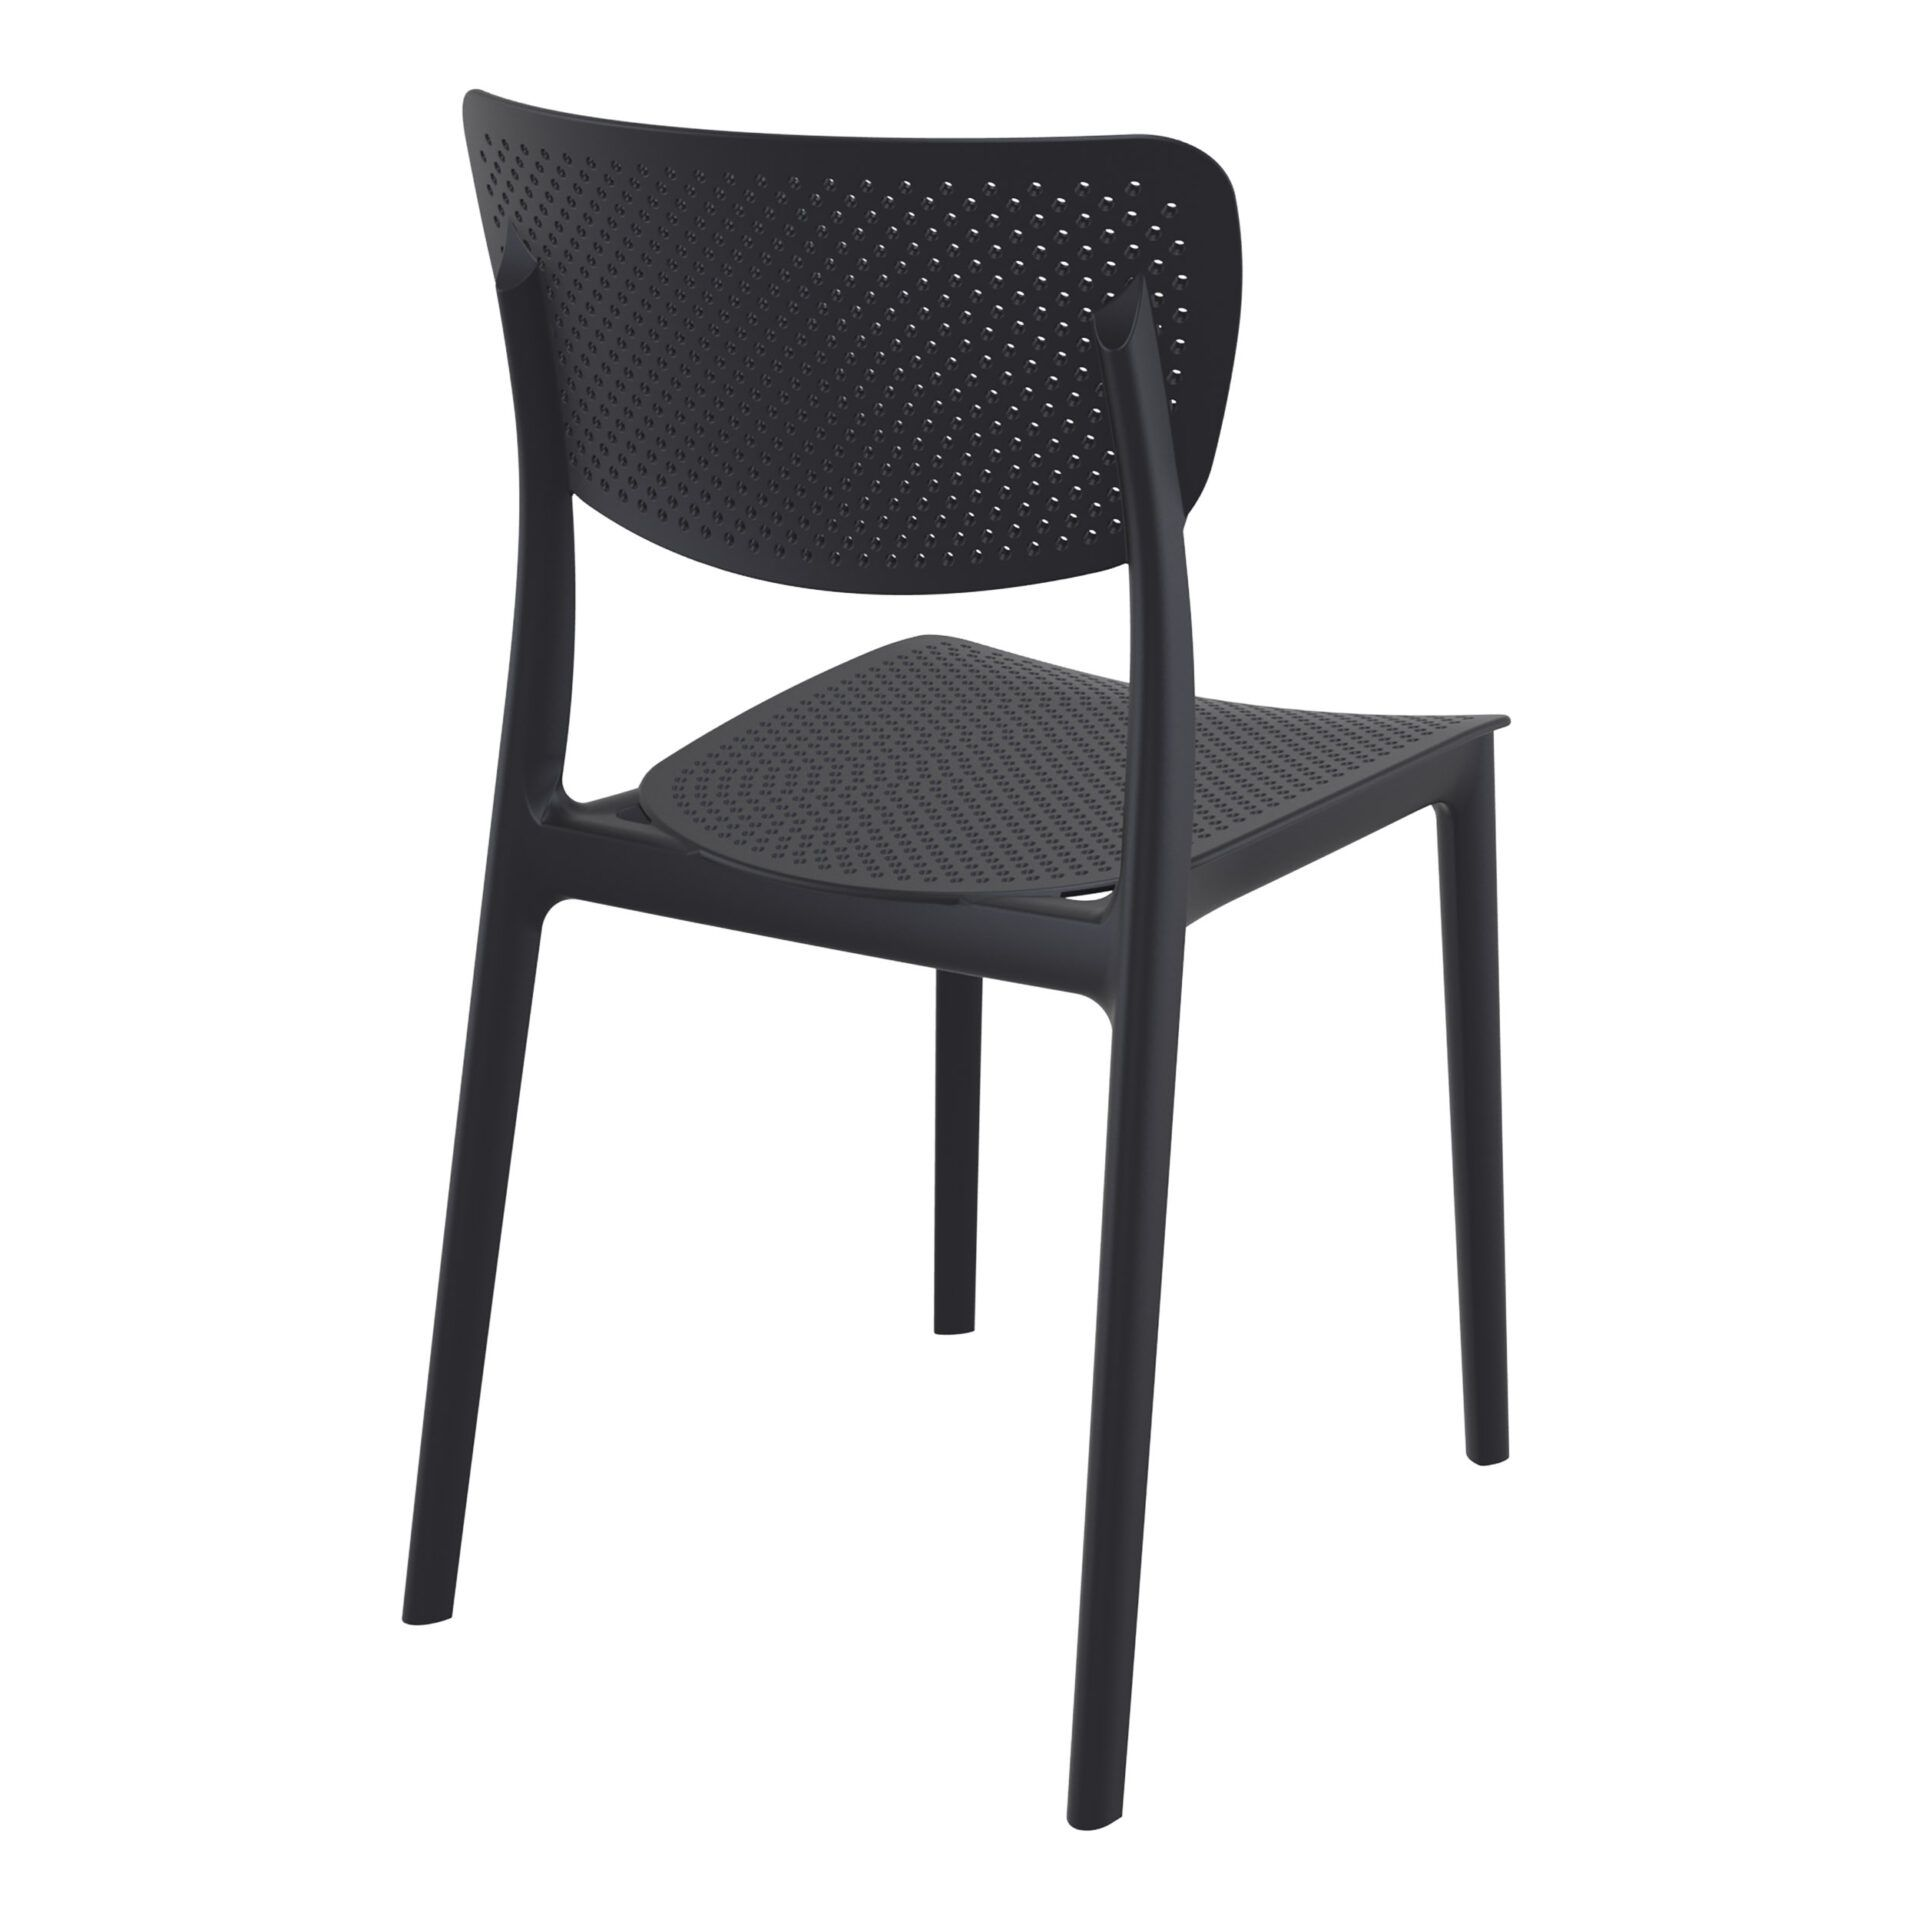 polypropylene hospitality seating lucy chair black back side